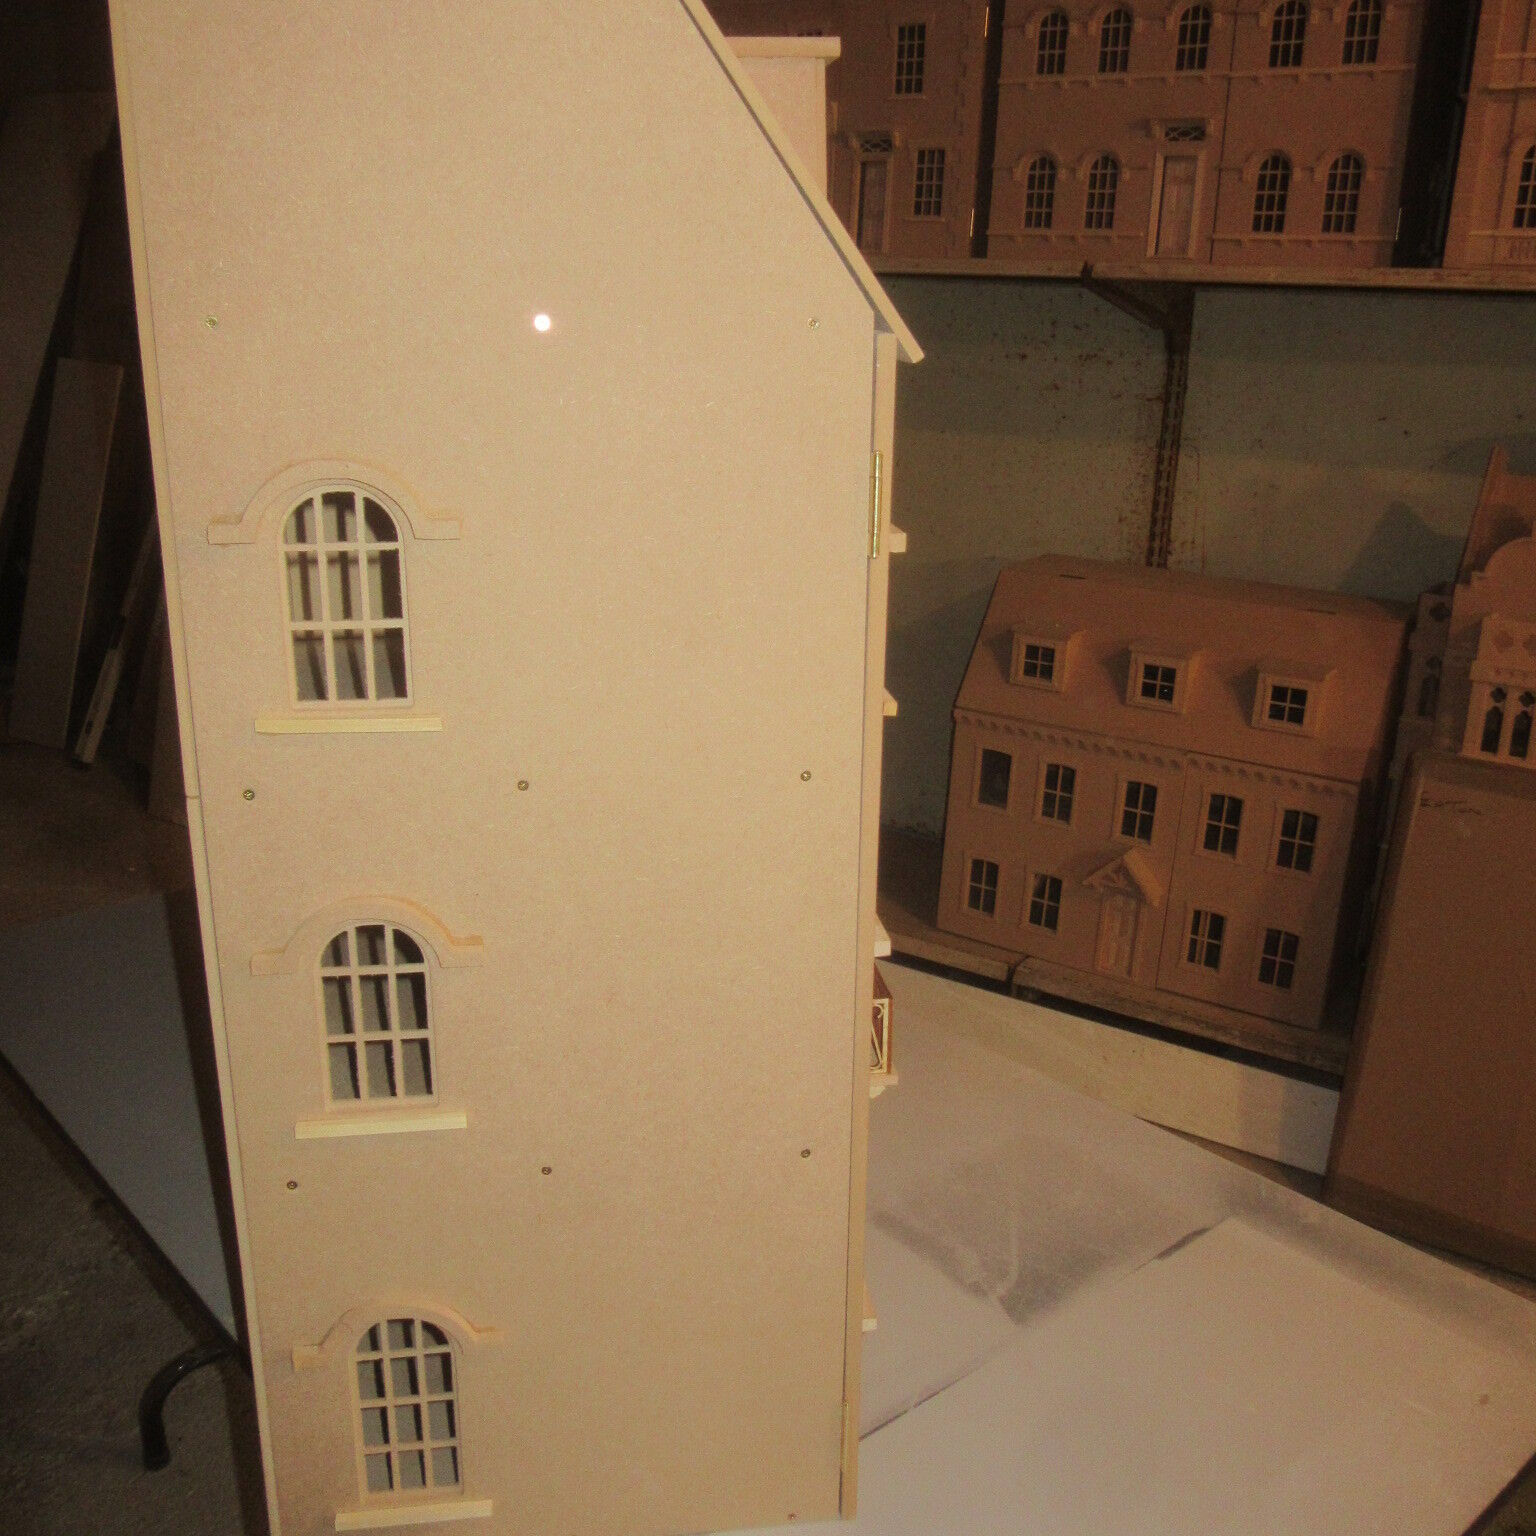 a dolls house act one Return from daycare act 1 helmer, nora's husband, appears to be working in a room nearby he speaks up when he heard the commotion outside his door nora.